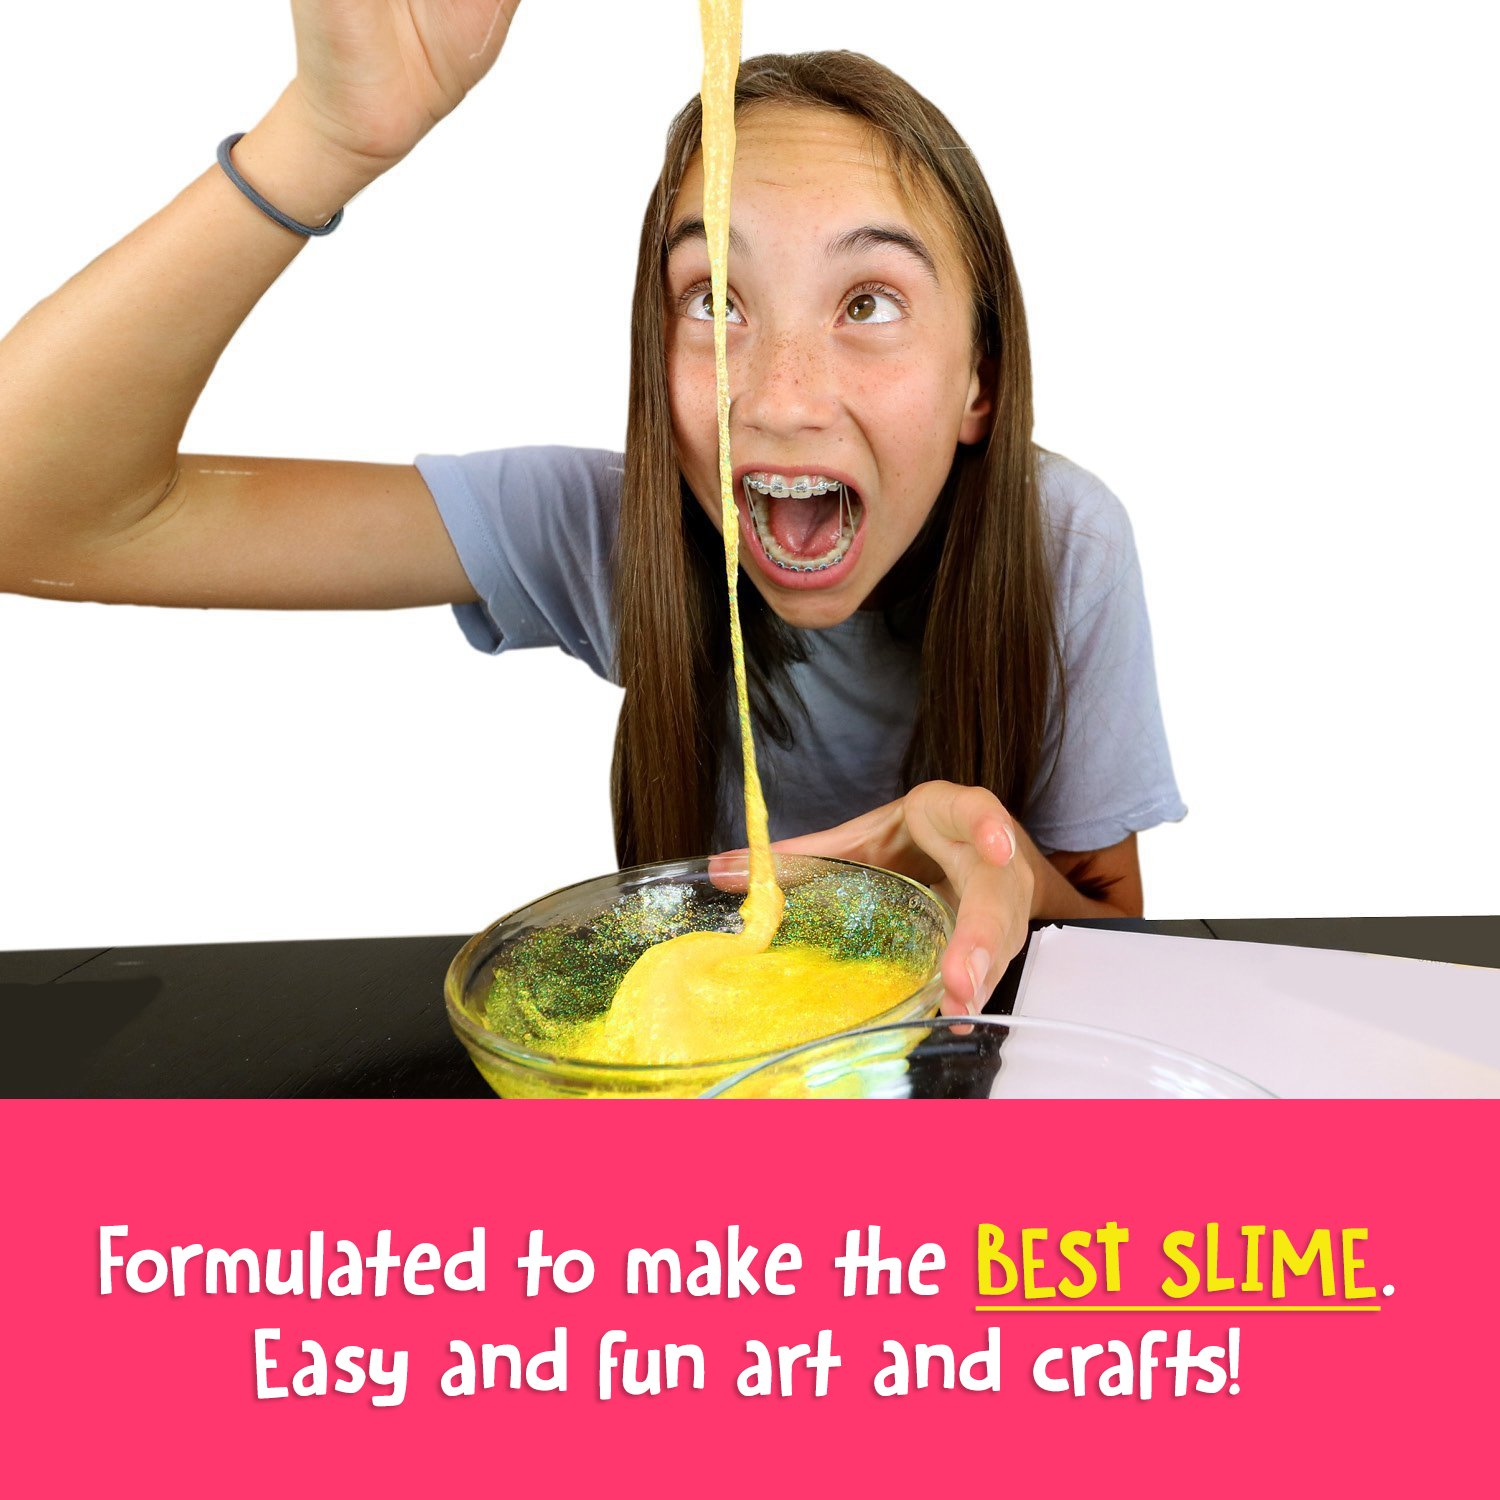 Ultimate Slime Kit Supplies Stuff for Girls and Boys Making Slime [EVERYTHING IN ONE BOX] Kids can Make Unicorn, Glitter, Cloud, Rainbow Slimes and More. Includes Glue and Full instructions. by Original Stationery (Image #6)